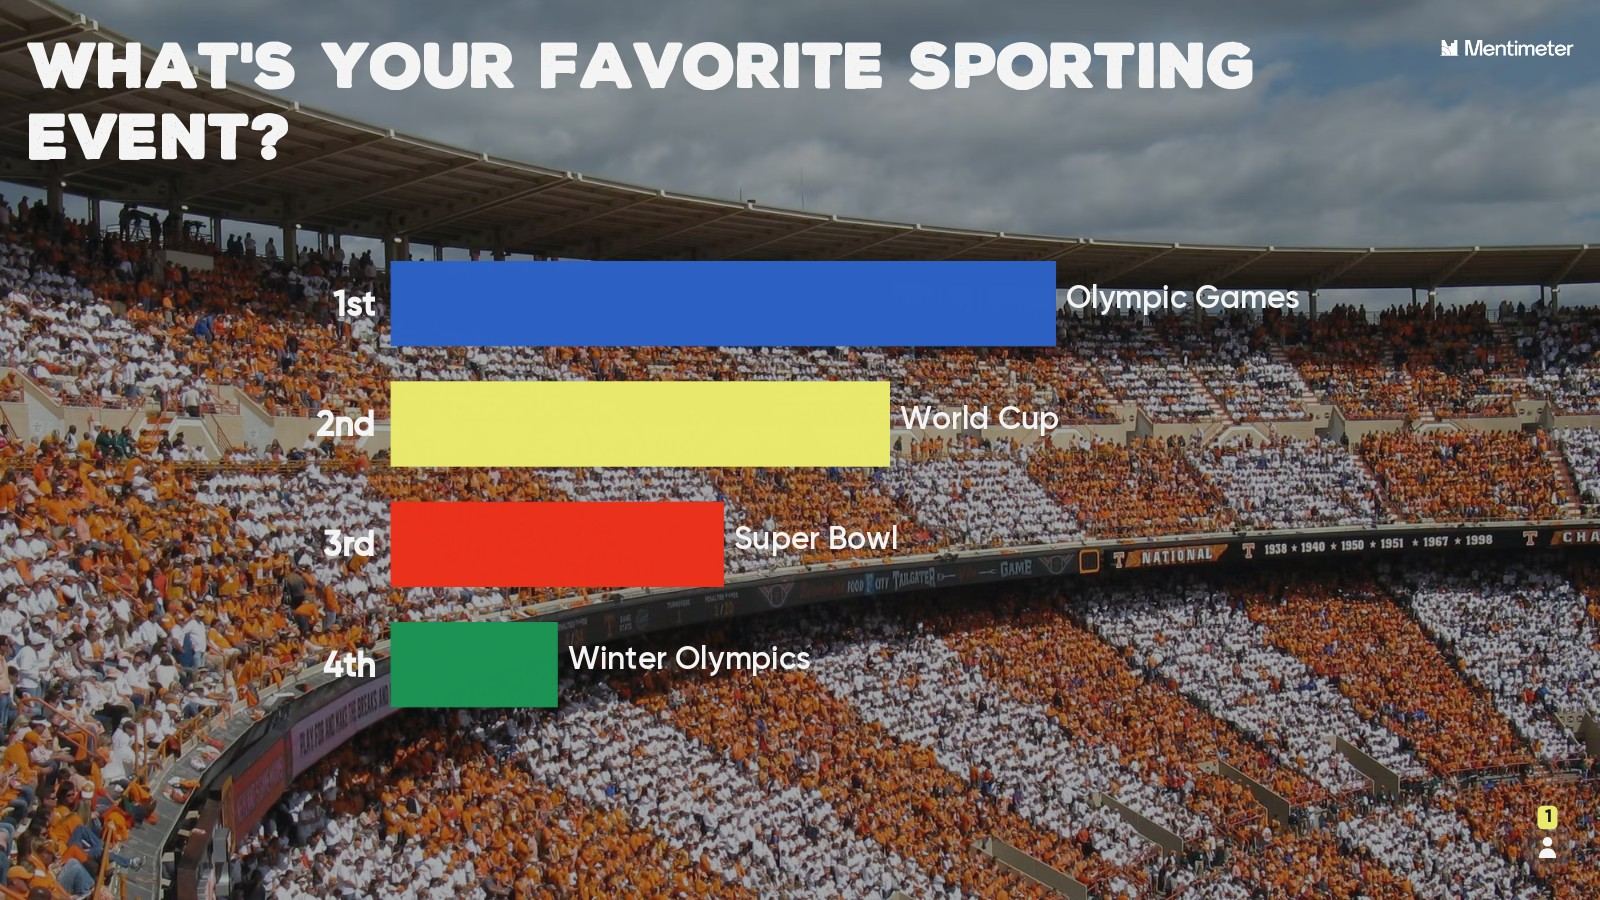 What's Your Favorite Sporting Event?